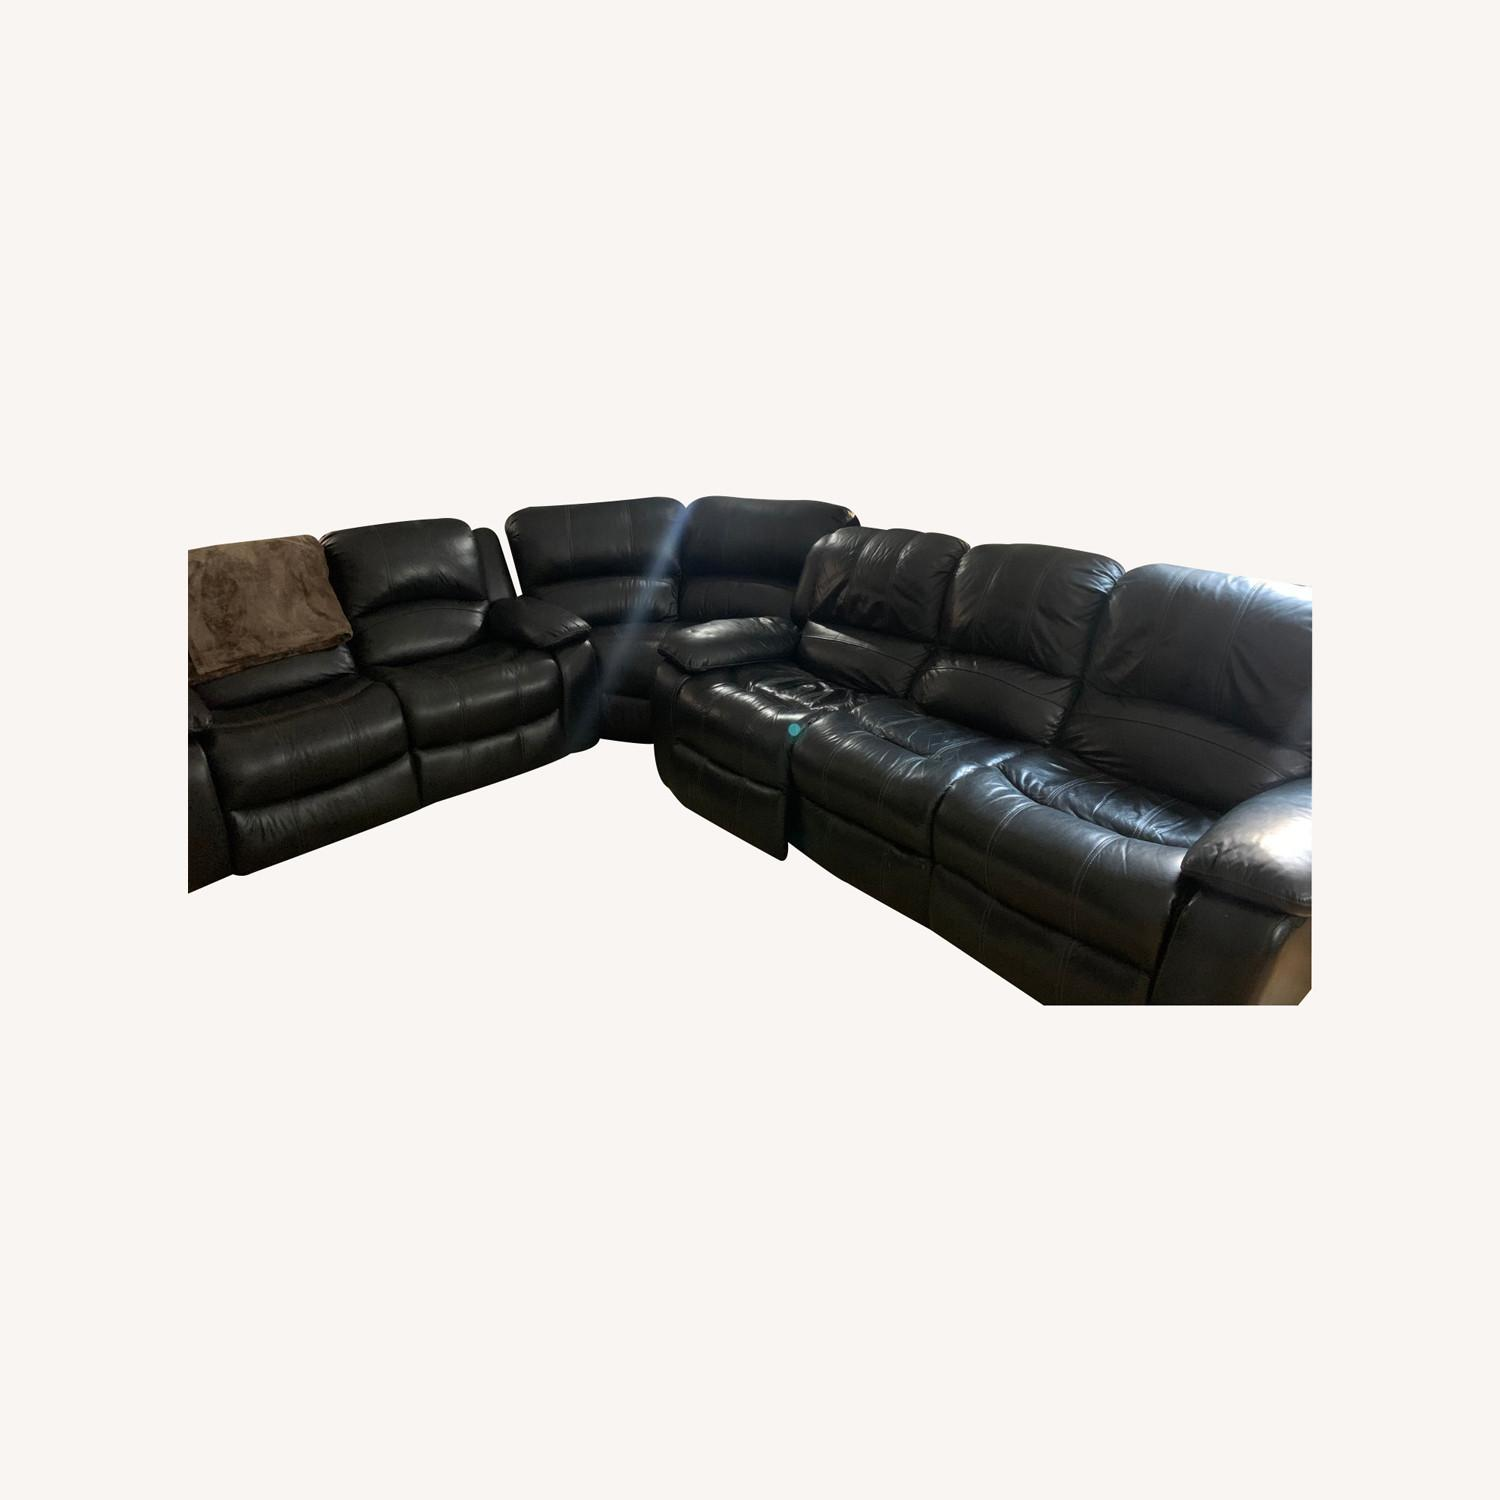 Raymour & Flanigan 3-piece Couch Set - image-0